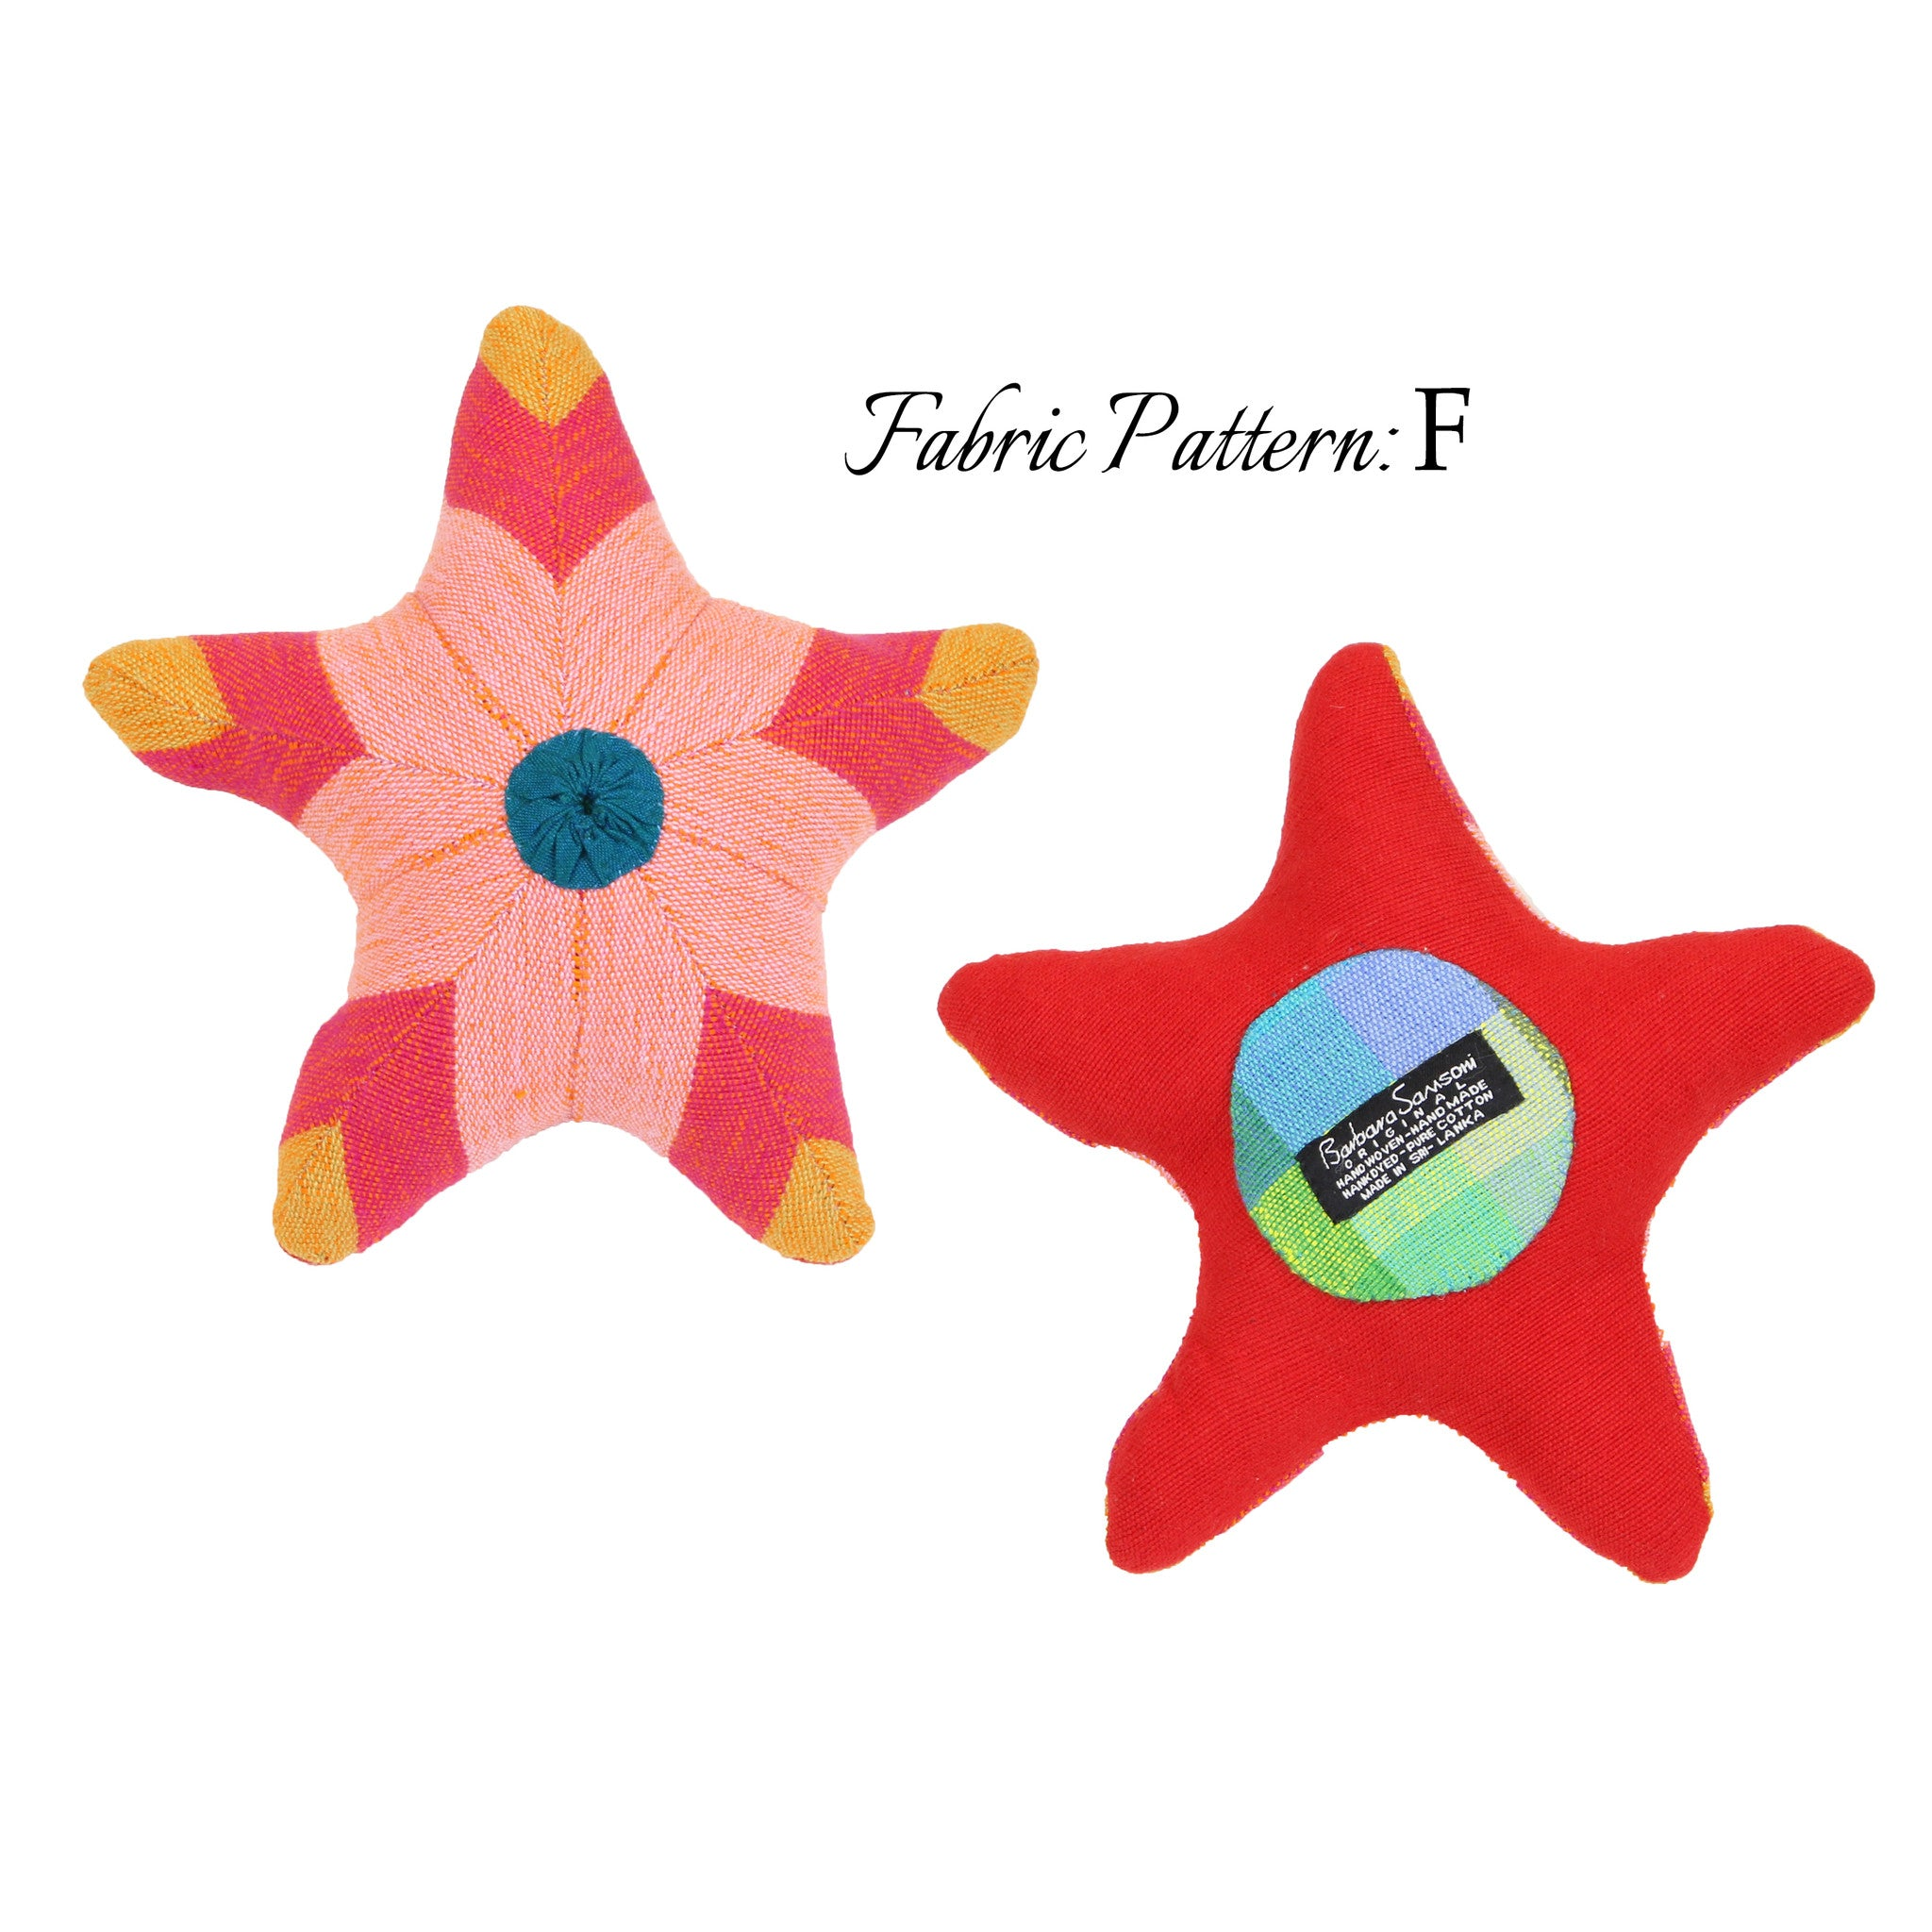 Sarah, the Starfish - pattern F (front & back view)